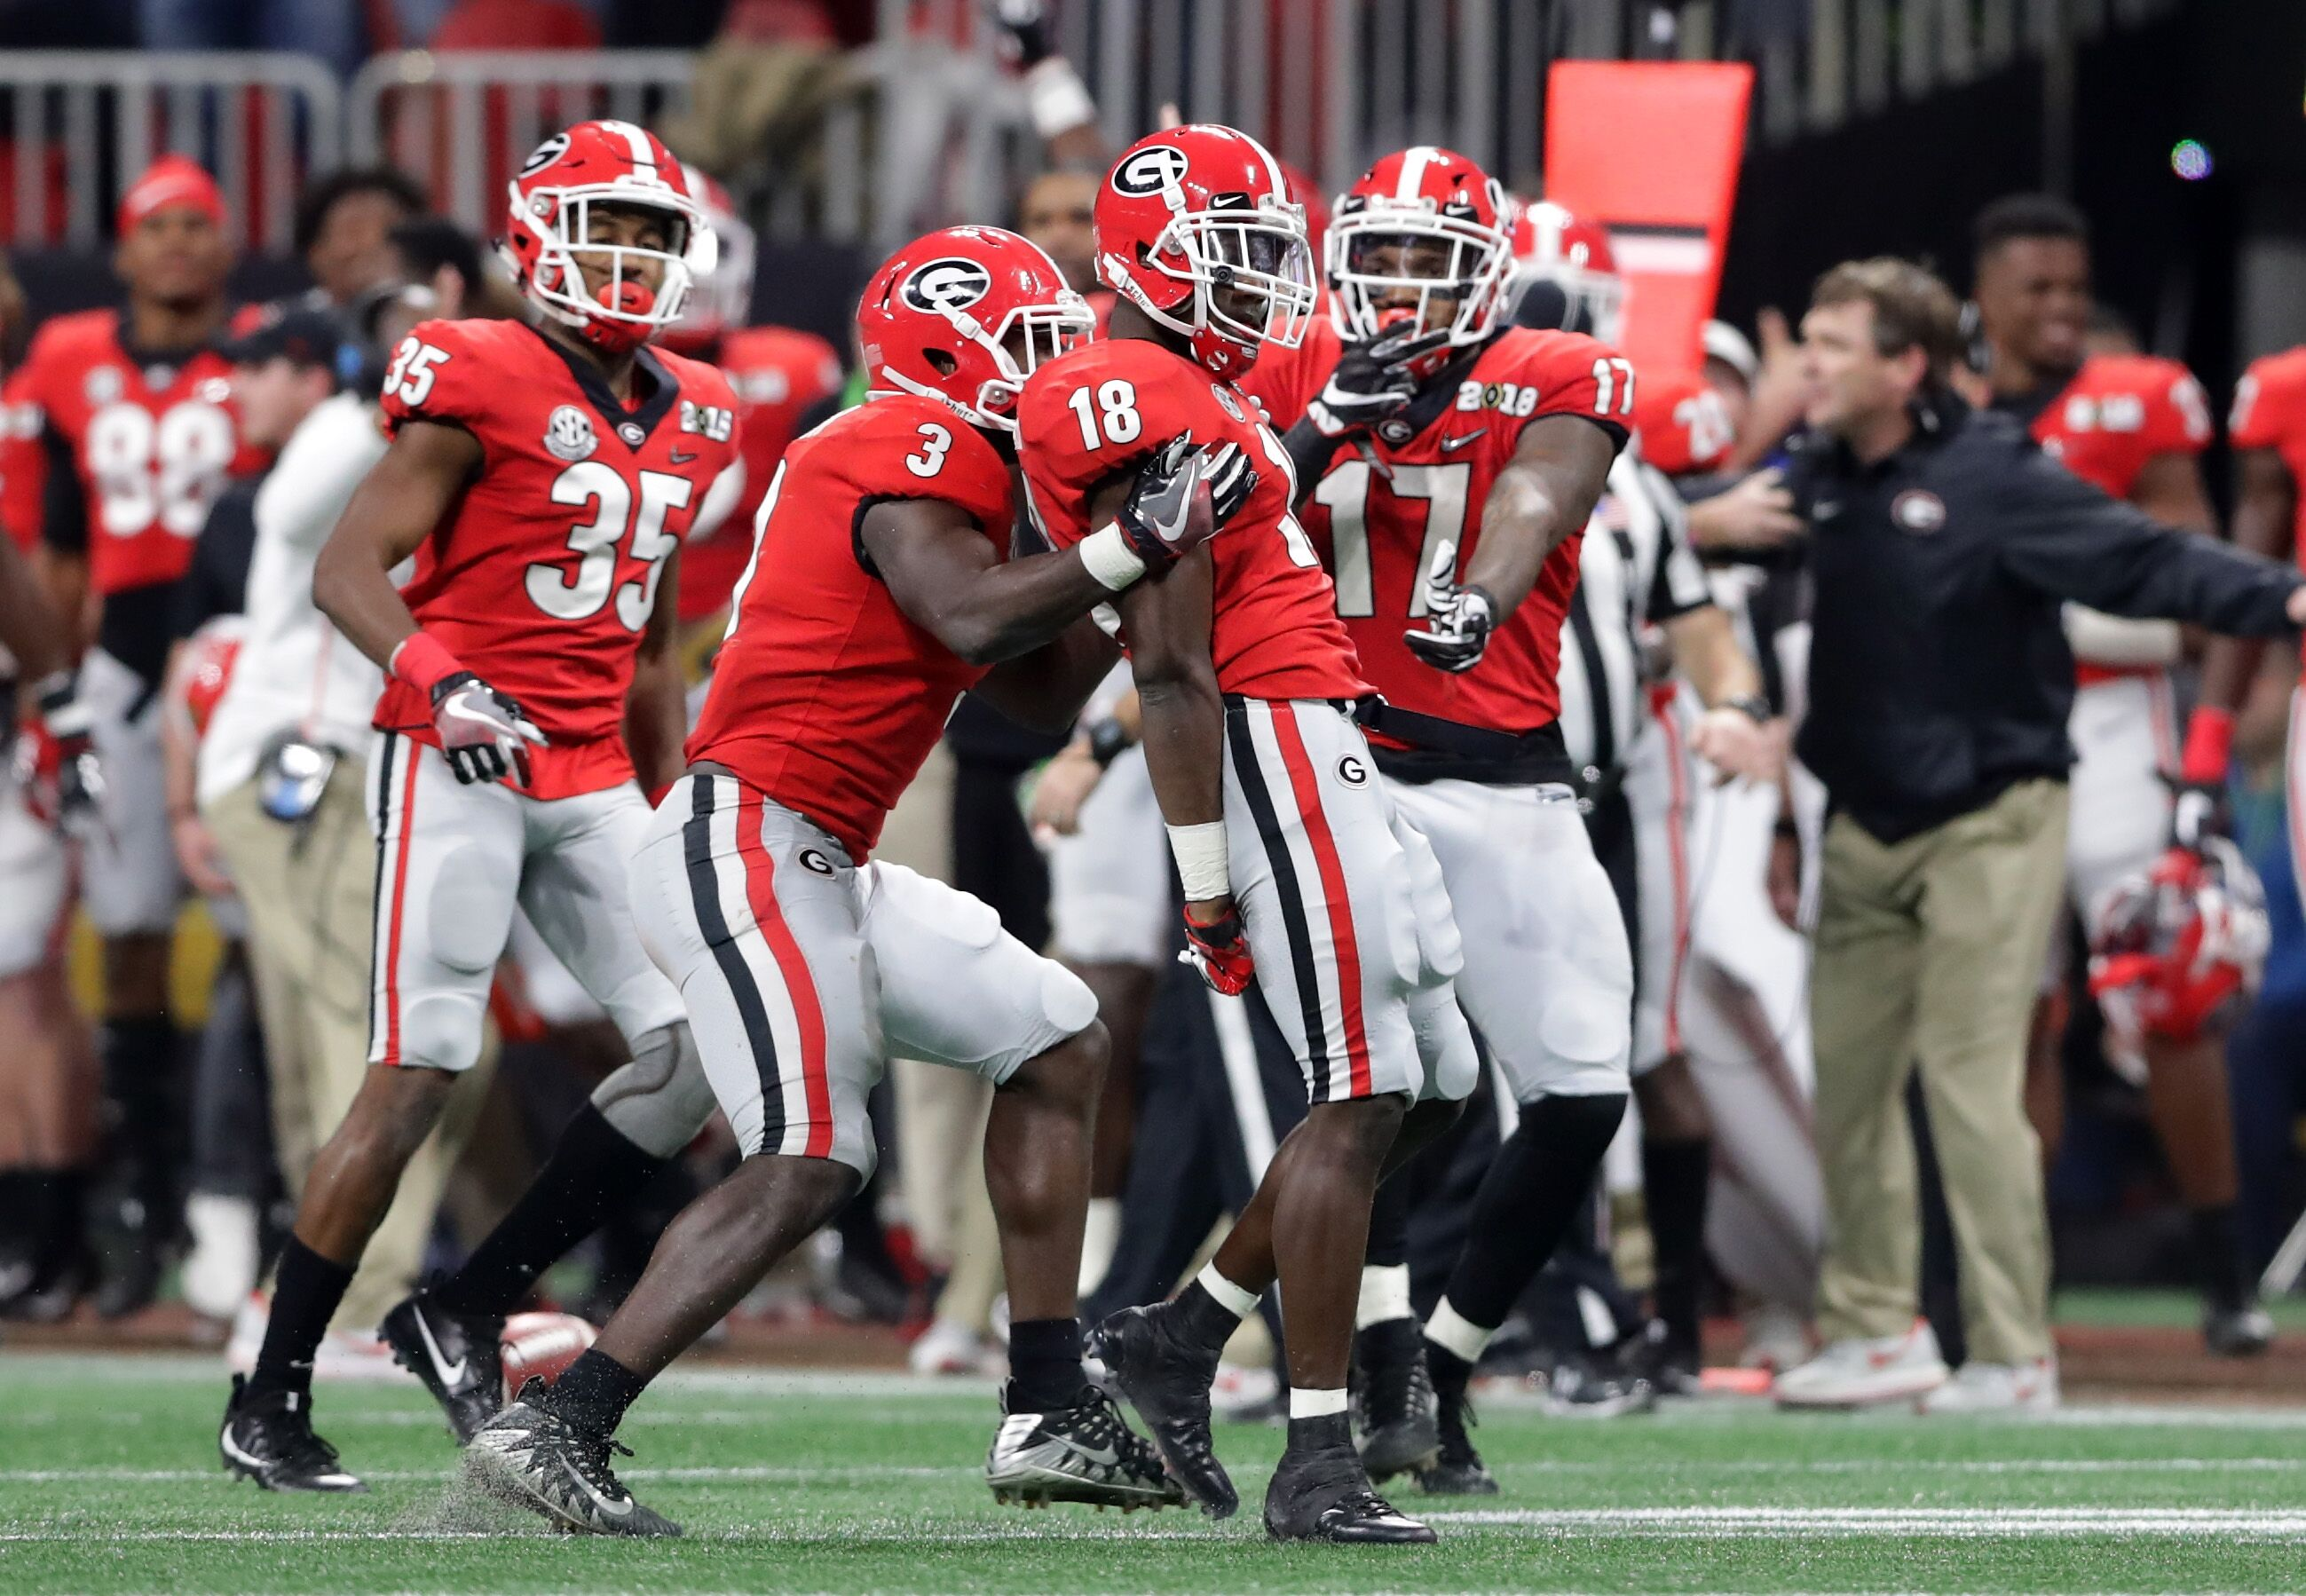 902772708-cfp-national-championship-presented-by-at.jpg